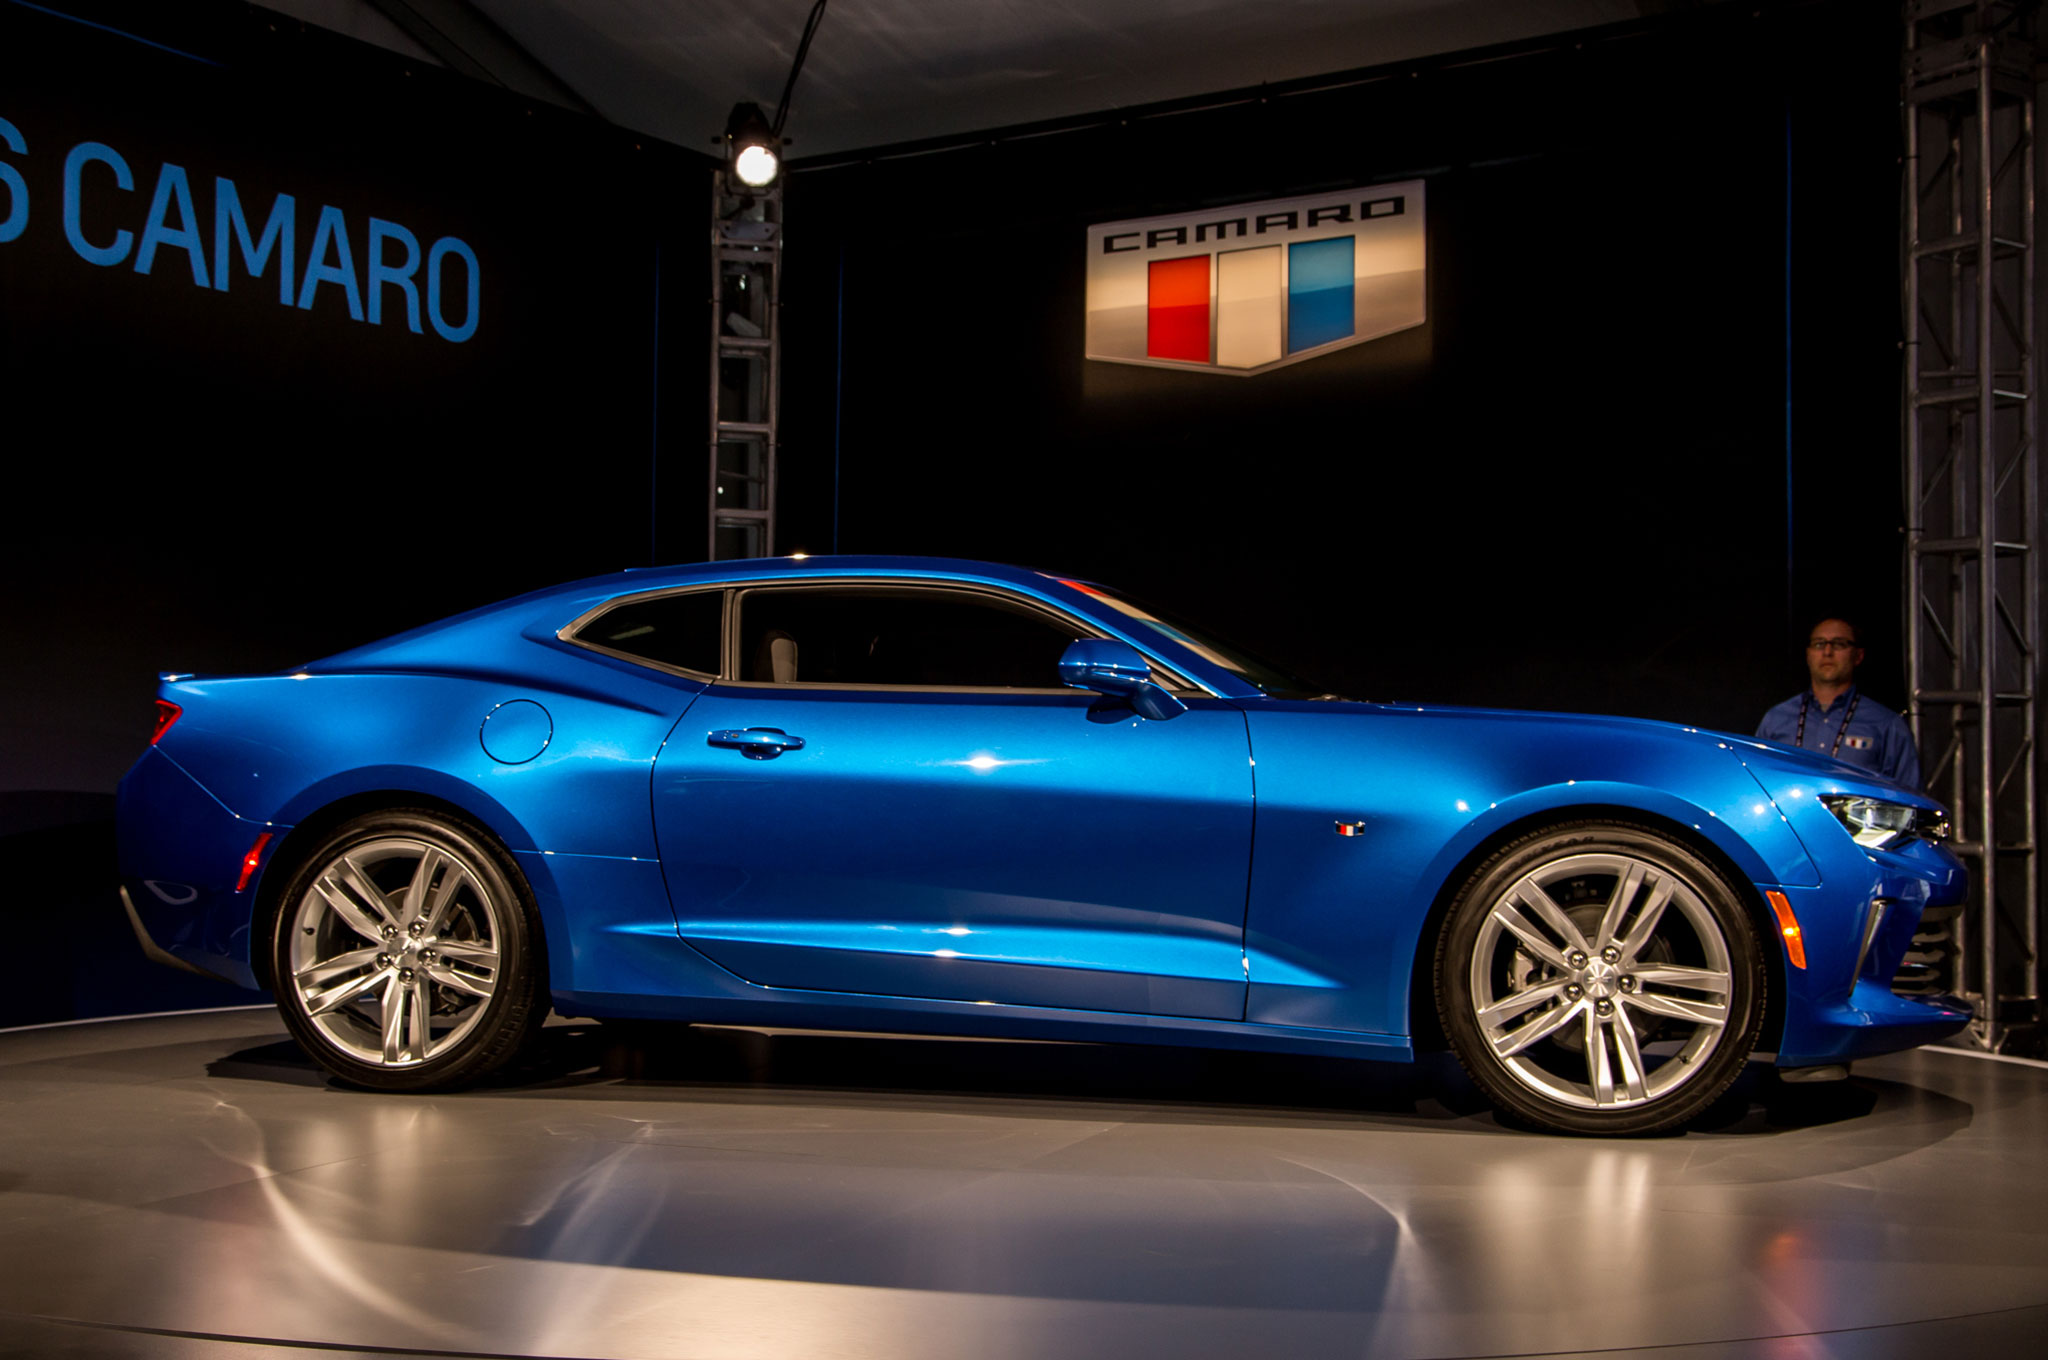 Chevrolet Camaro 2016, disponible desde $26,695